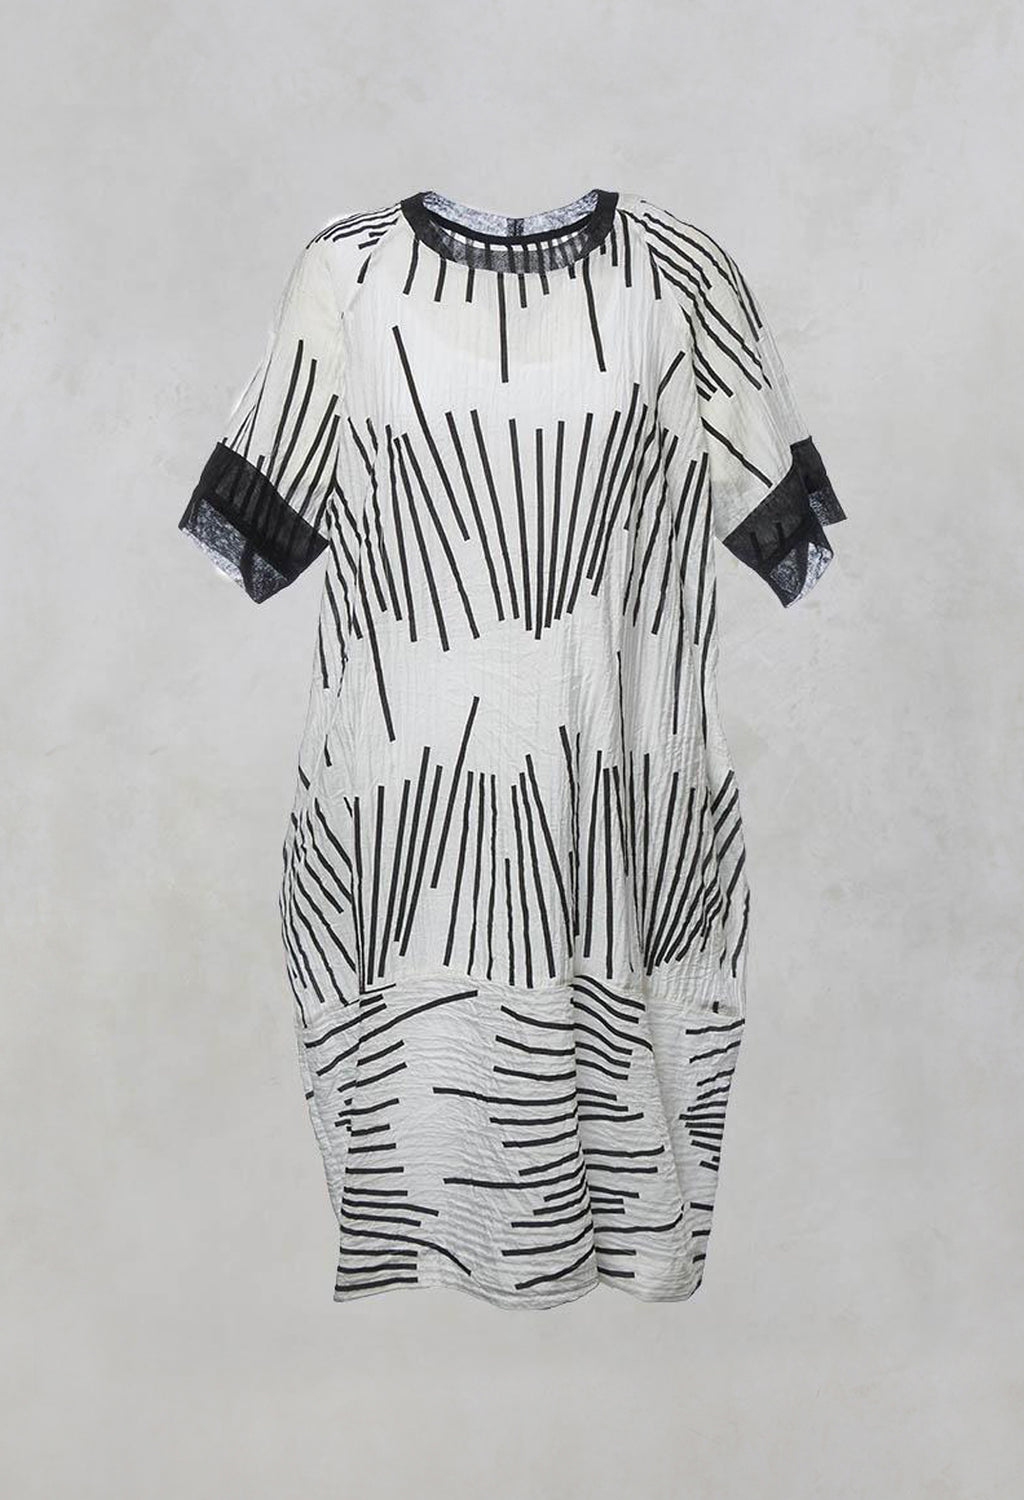 Oversized Shift Dress with Netting and Slip Dress in Black/White Print